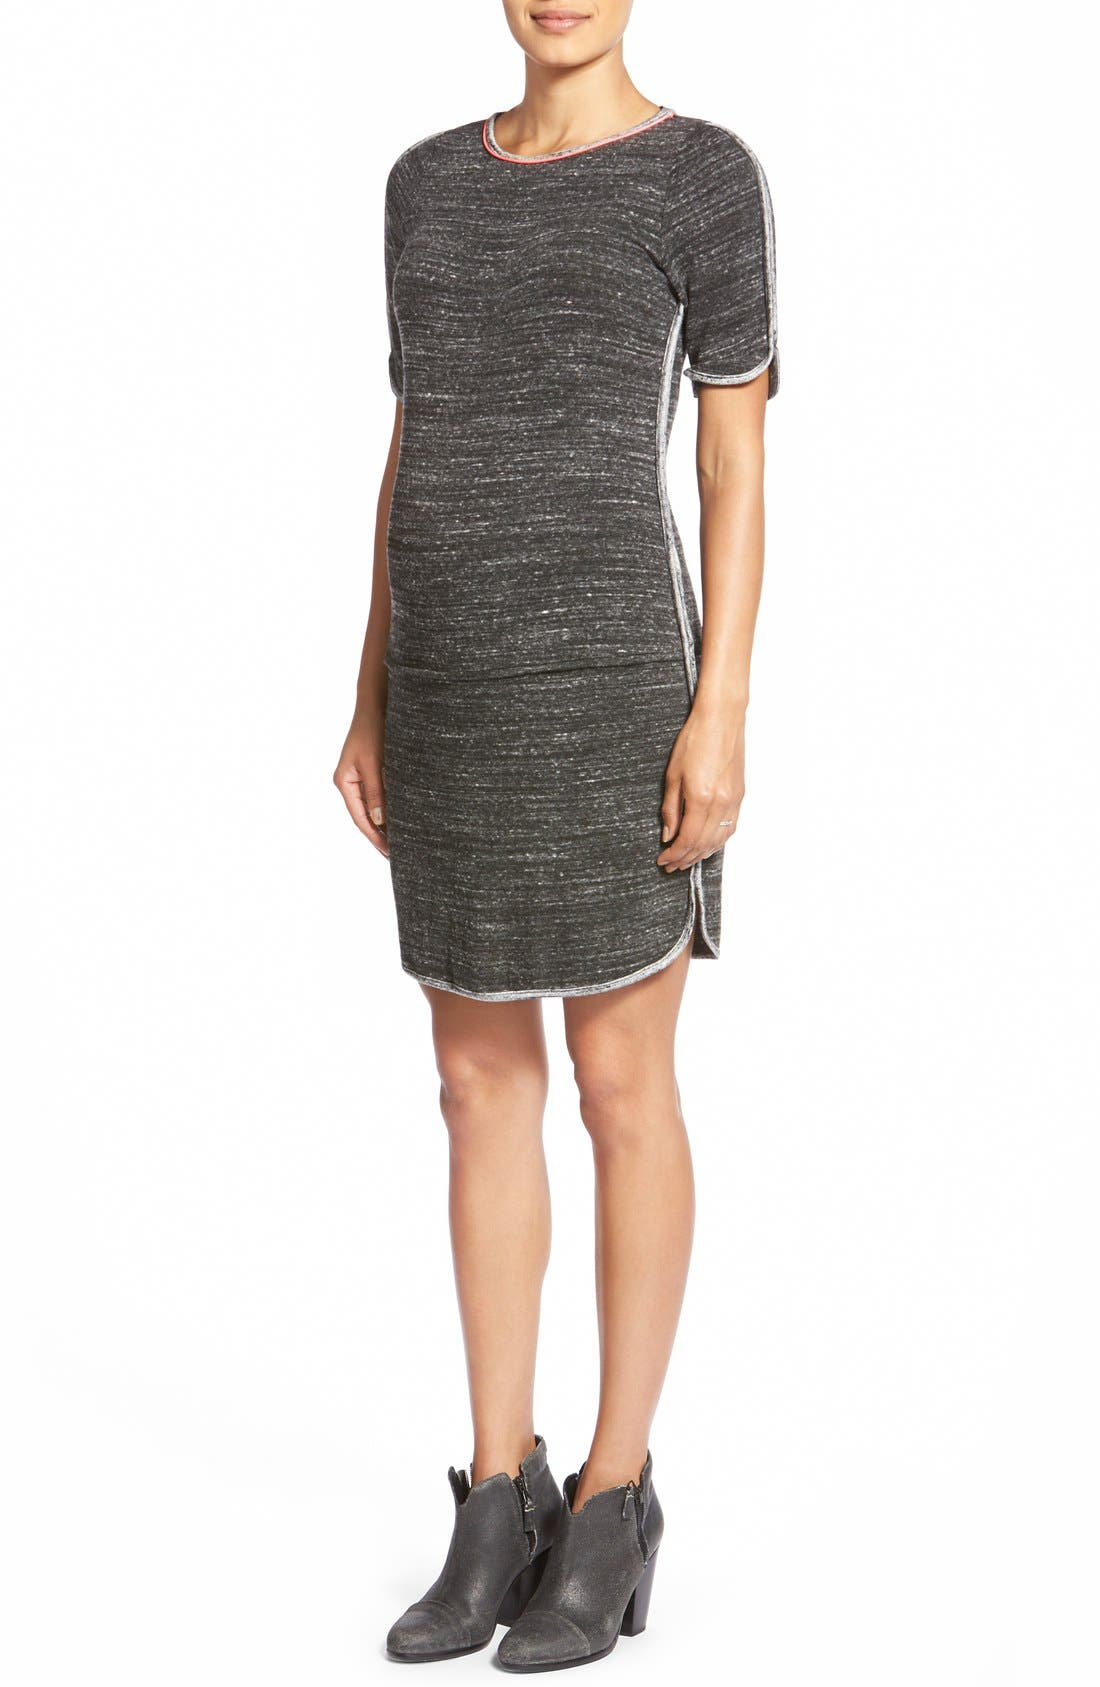 'Abby' Maternity Dress,                             Main thumbnail 1, color,                             Heather/ Charcoal